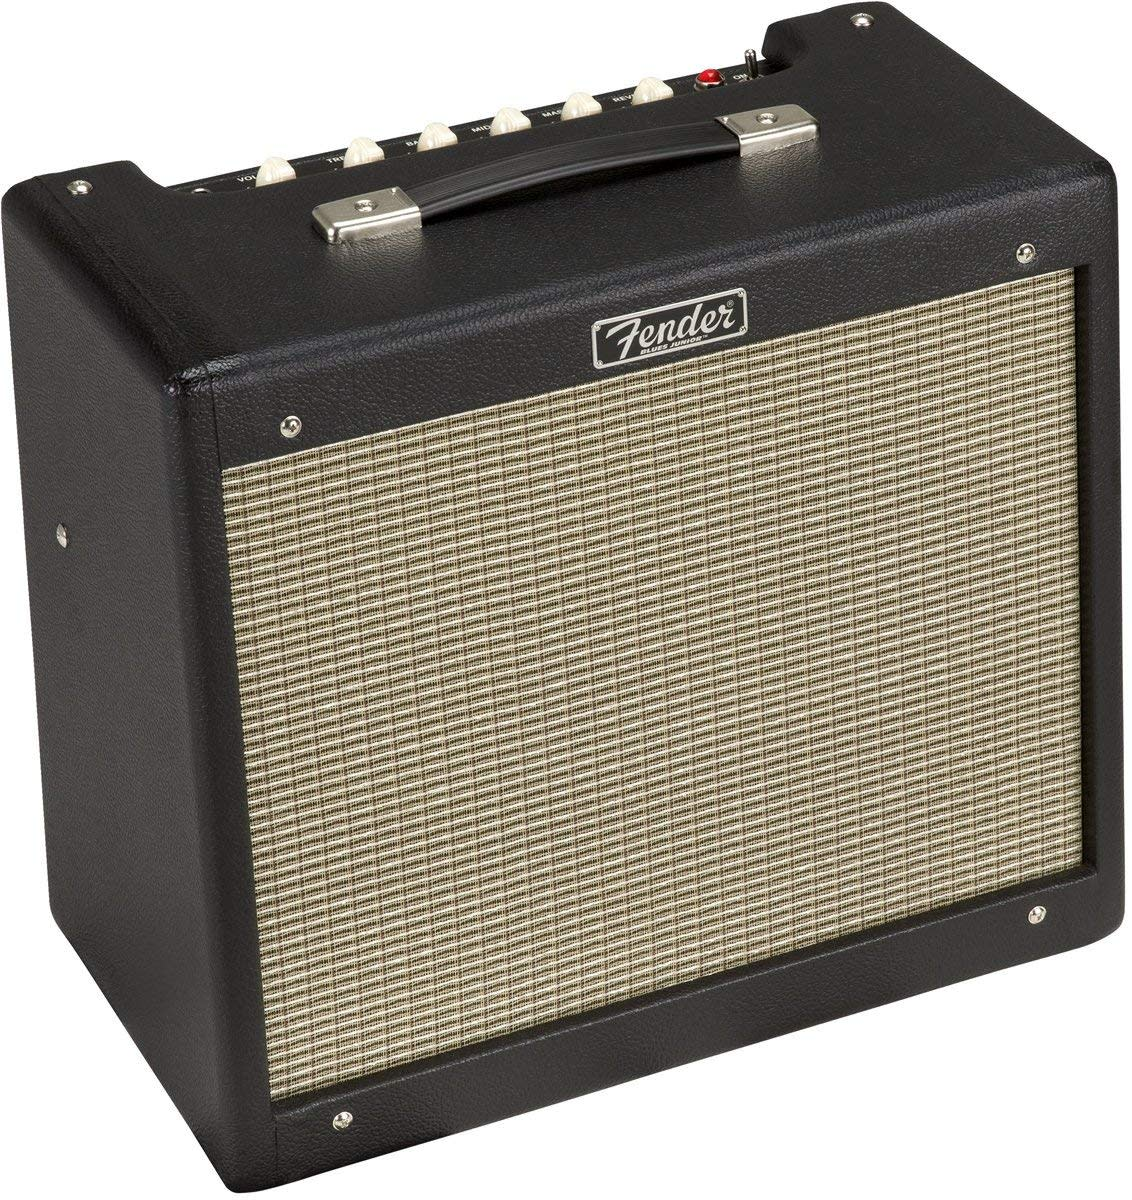 Best Small Tube Amps for Home Use